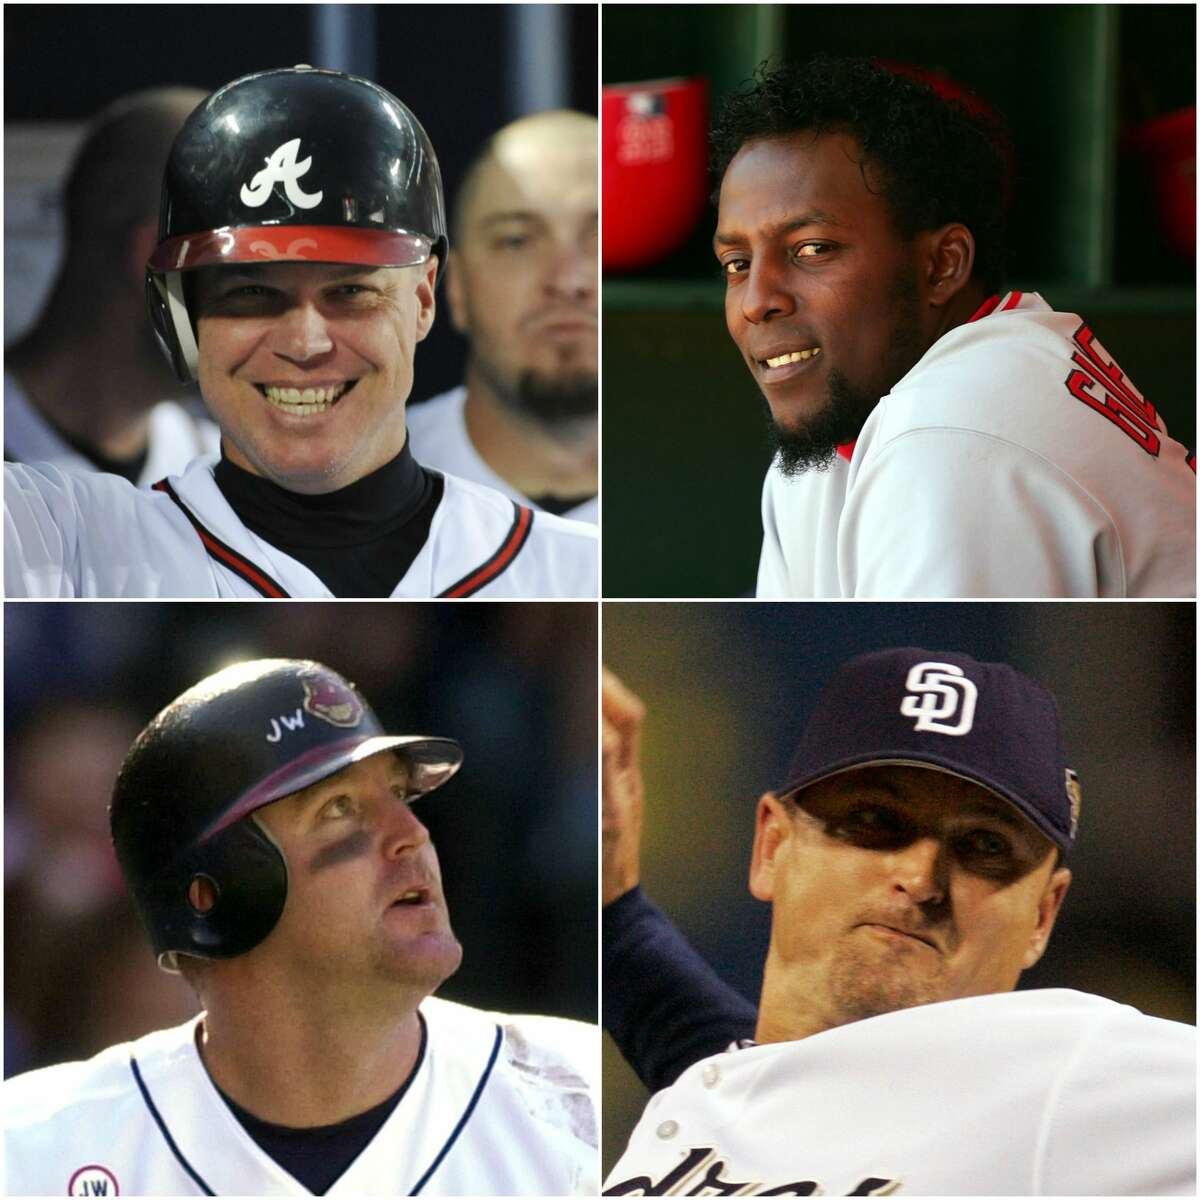 Chipper Jones, Jim Thome, Vladimir Guerrero and Trevor Hoffman have been elected to the baseball Hall of Fame.